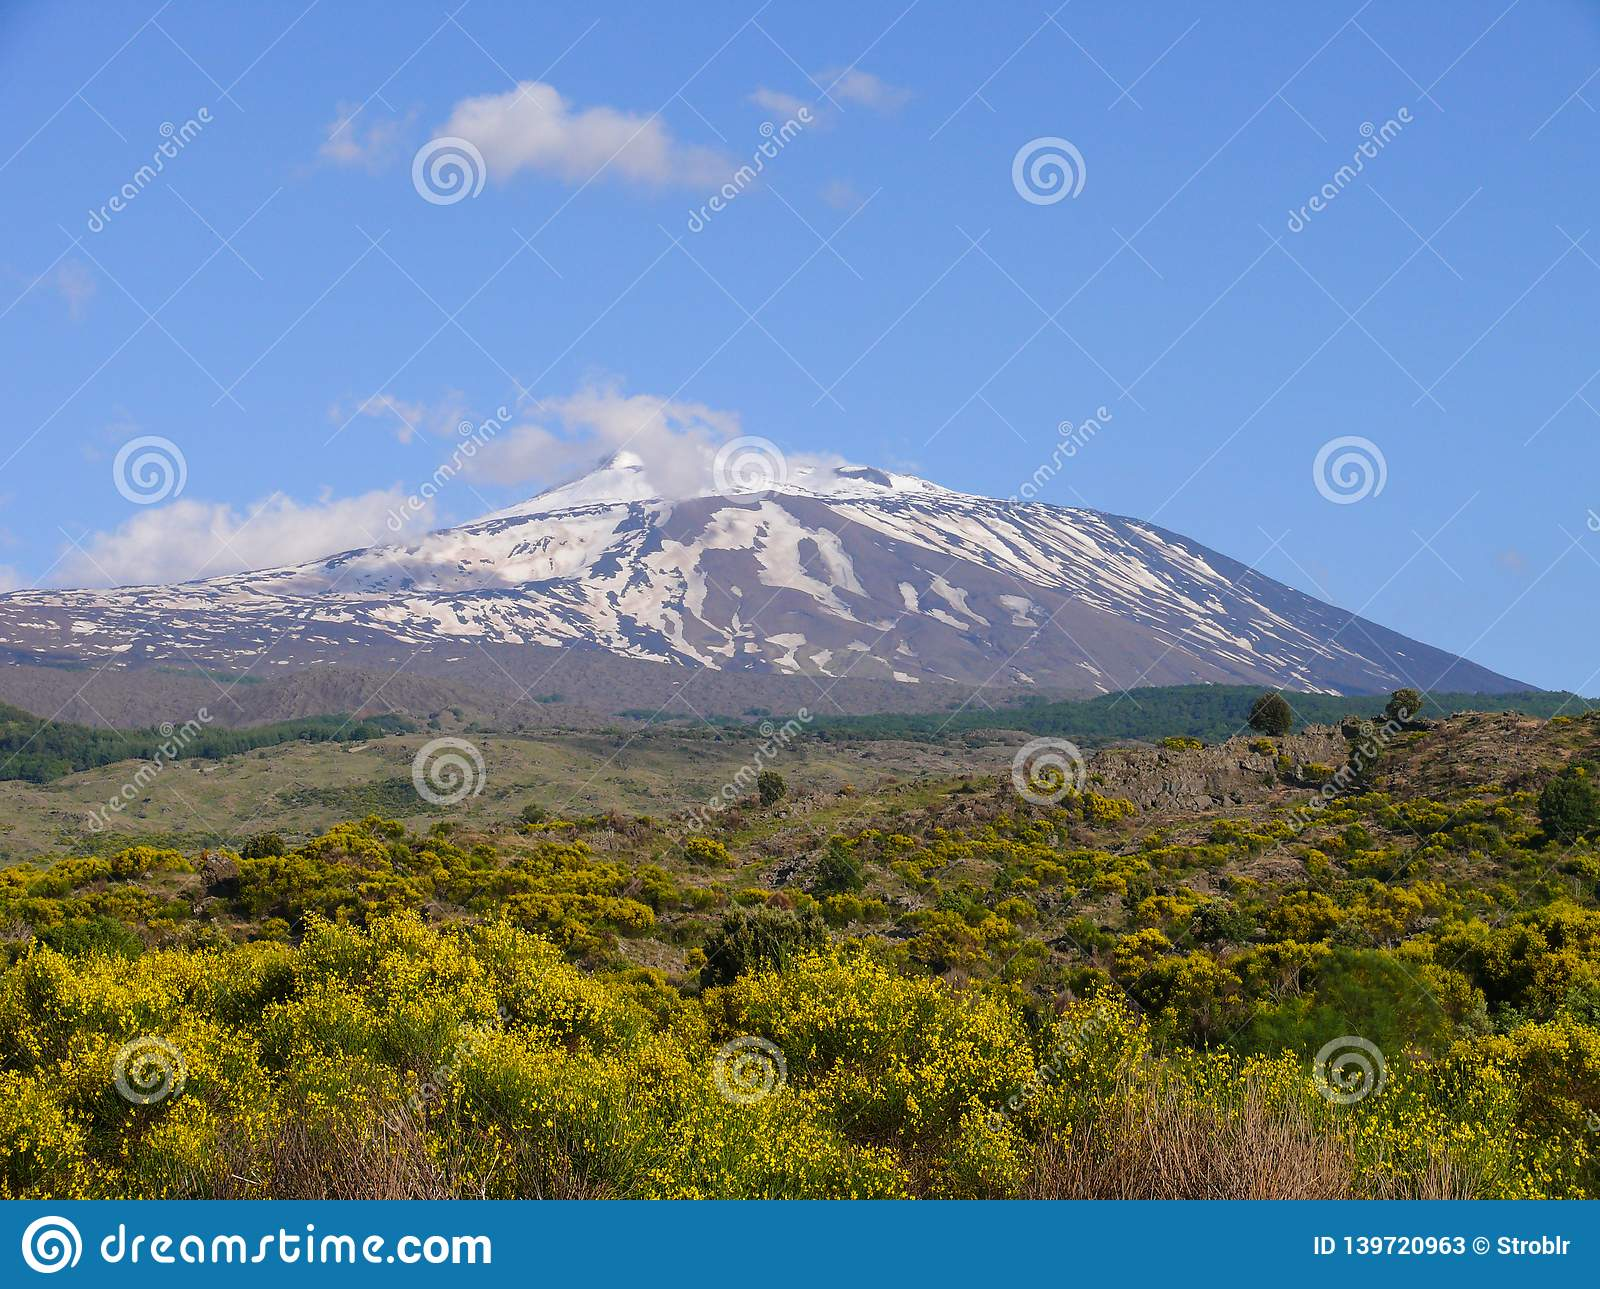 The summit of Mount Etna